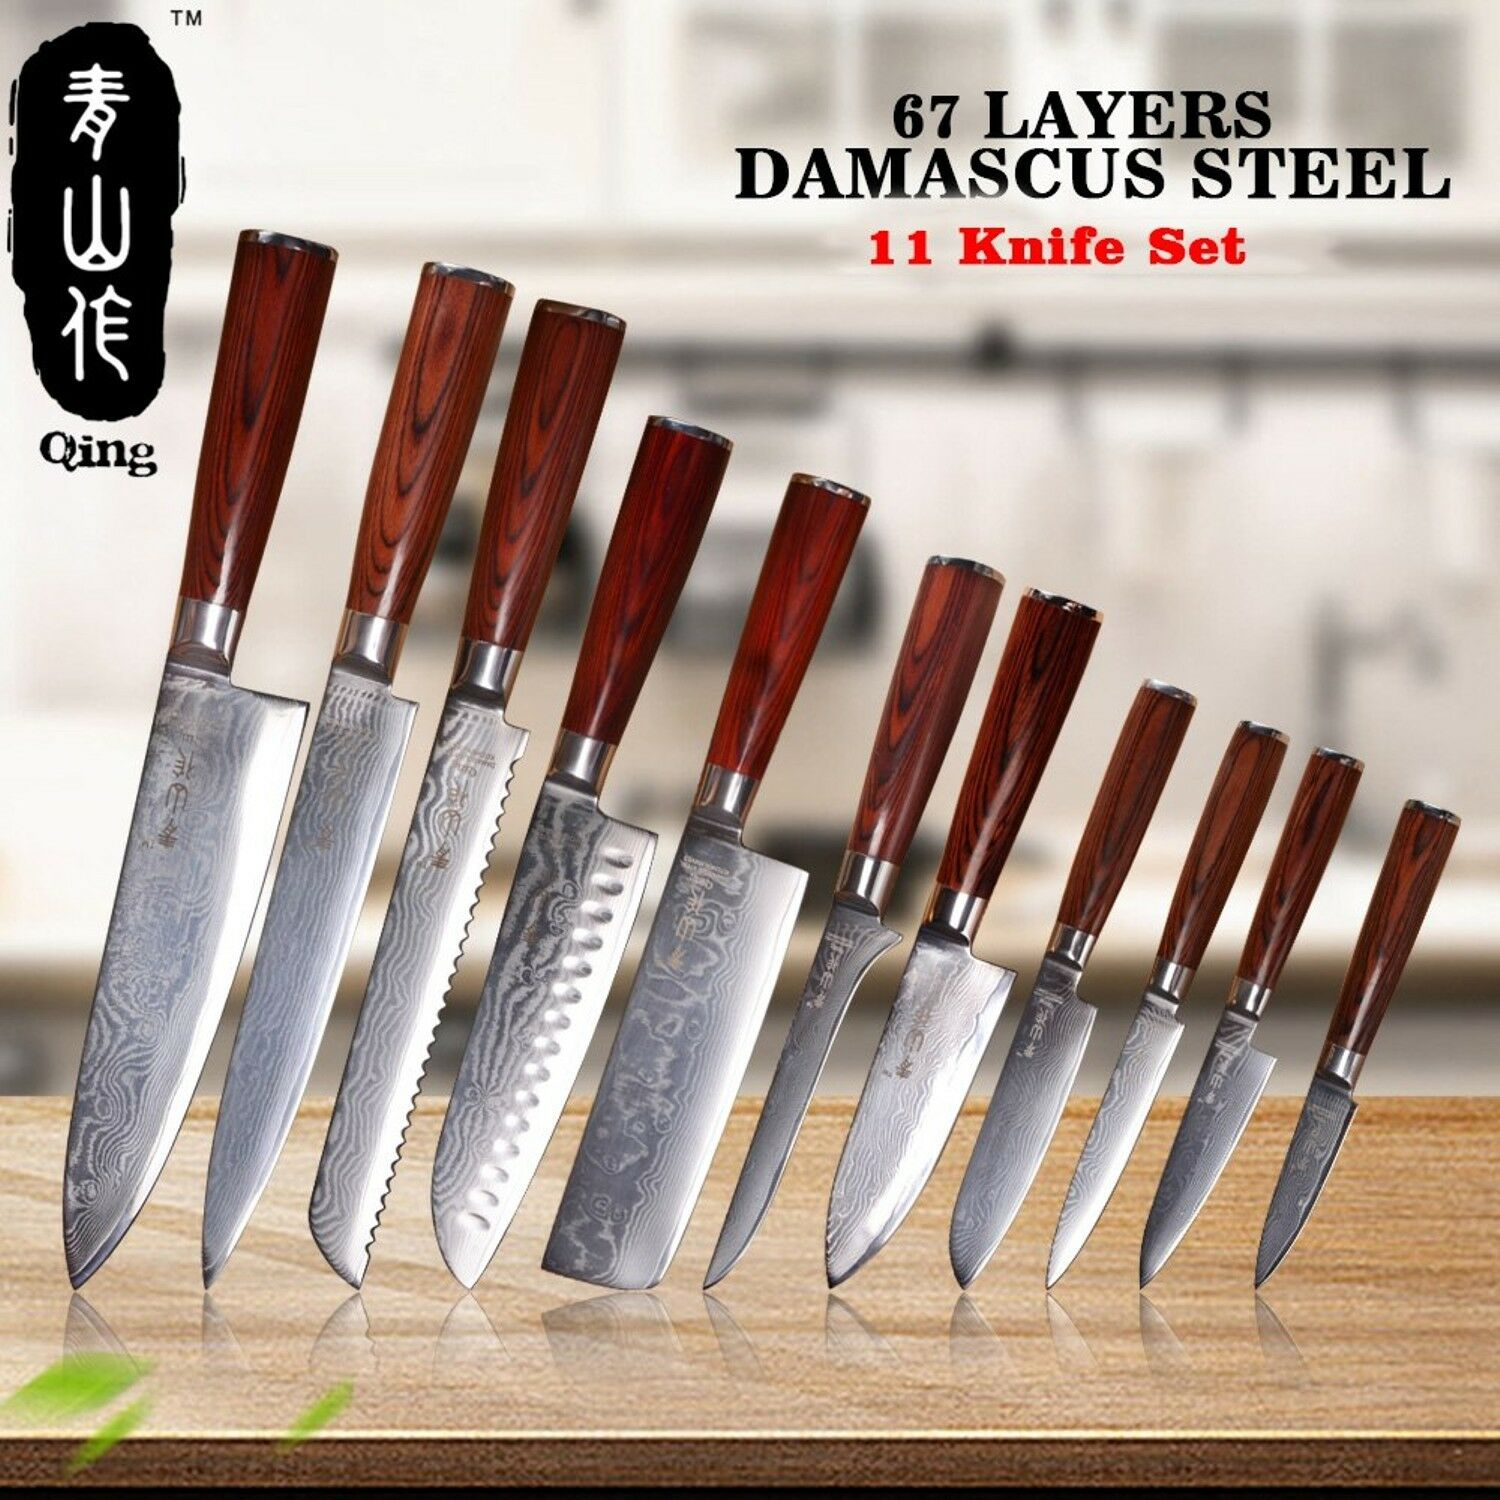 Complete Knife Set 67 Layers Damascus Steel Chef Utility Cleaver Kitchen Knives